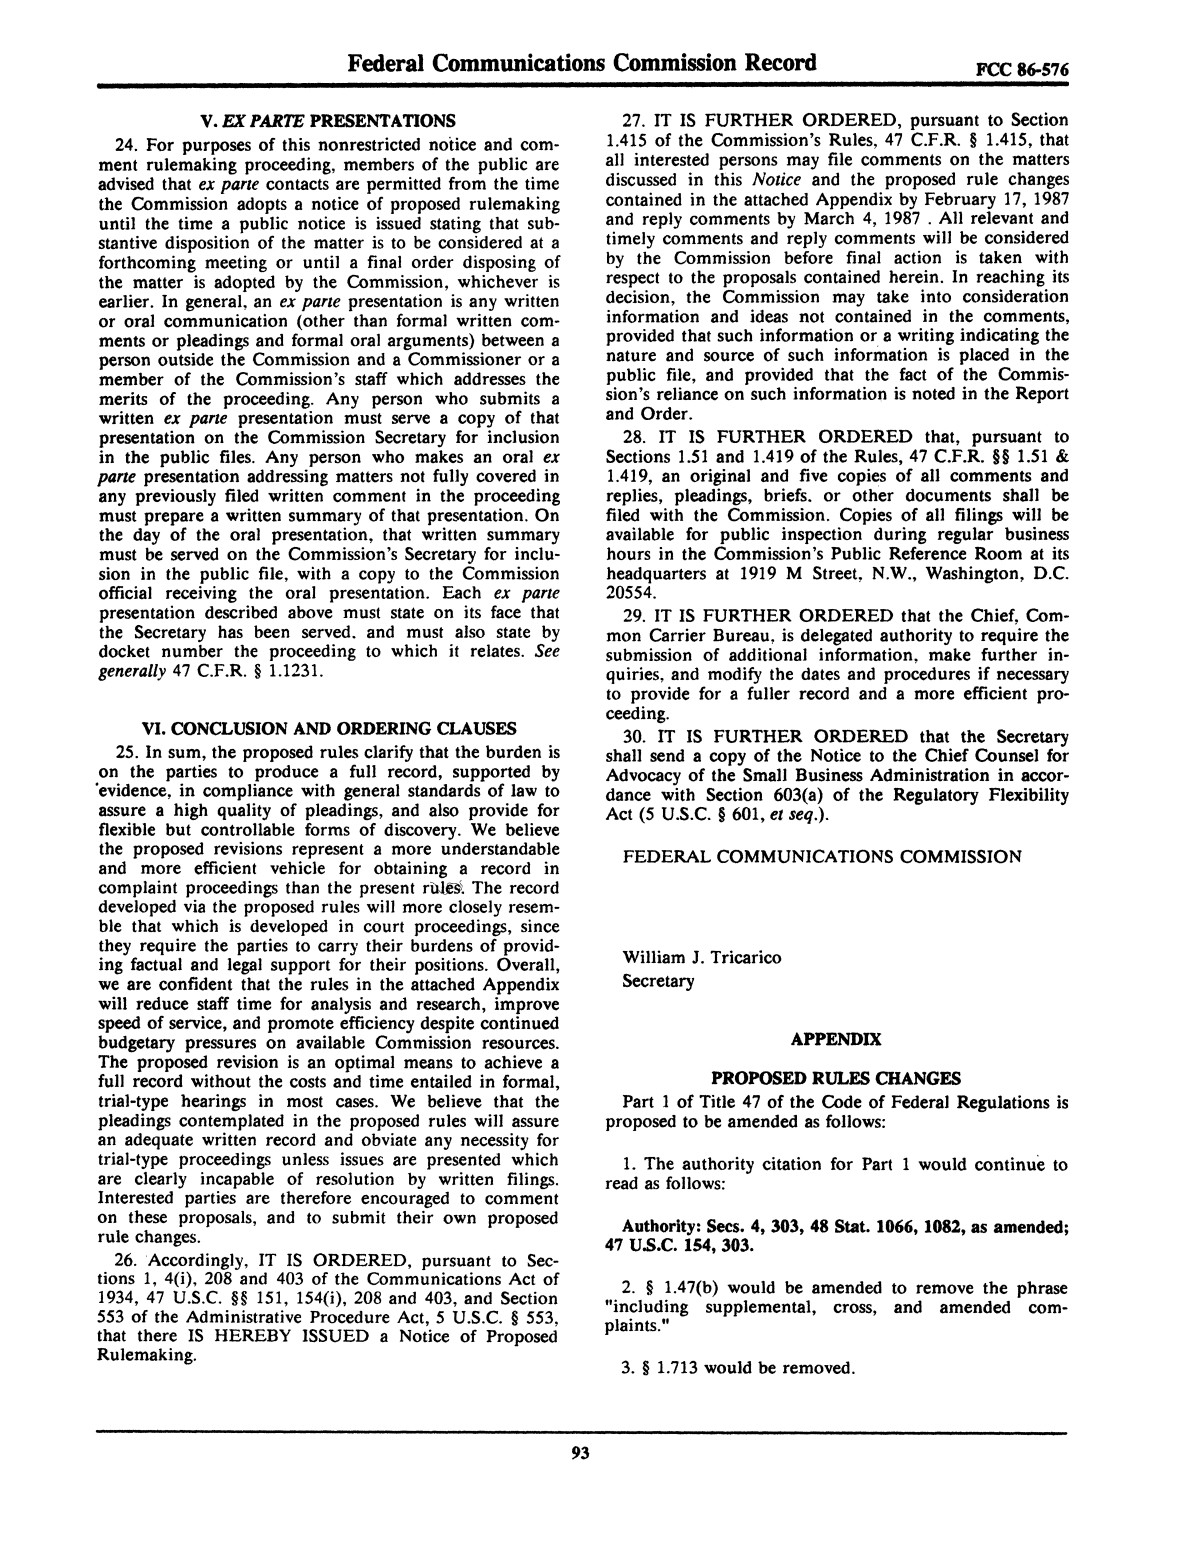 FCC Record, Volume 2, No. 1, Pages 1 to 409, January 5 - January 16, 1987                                                                                                      93